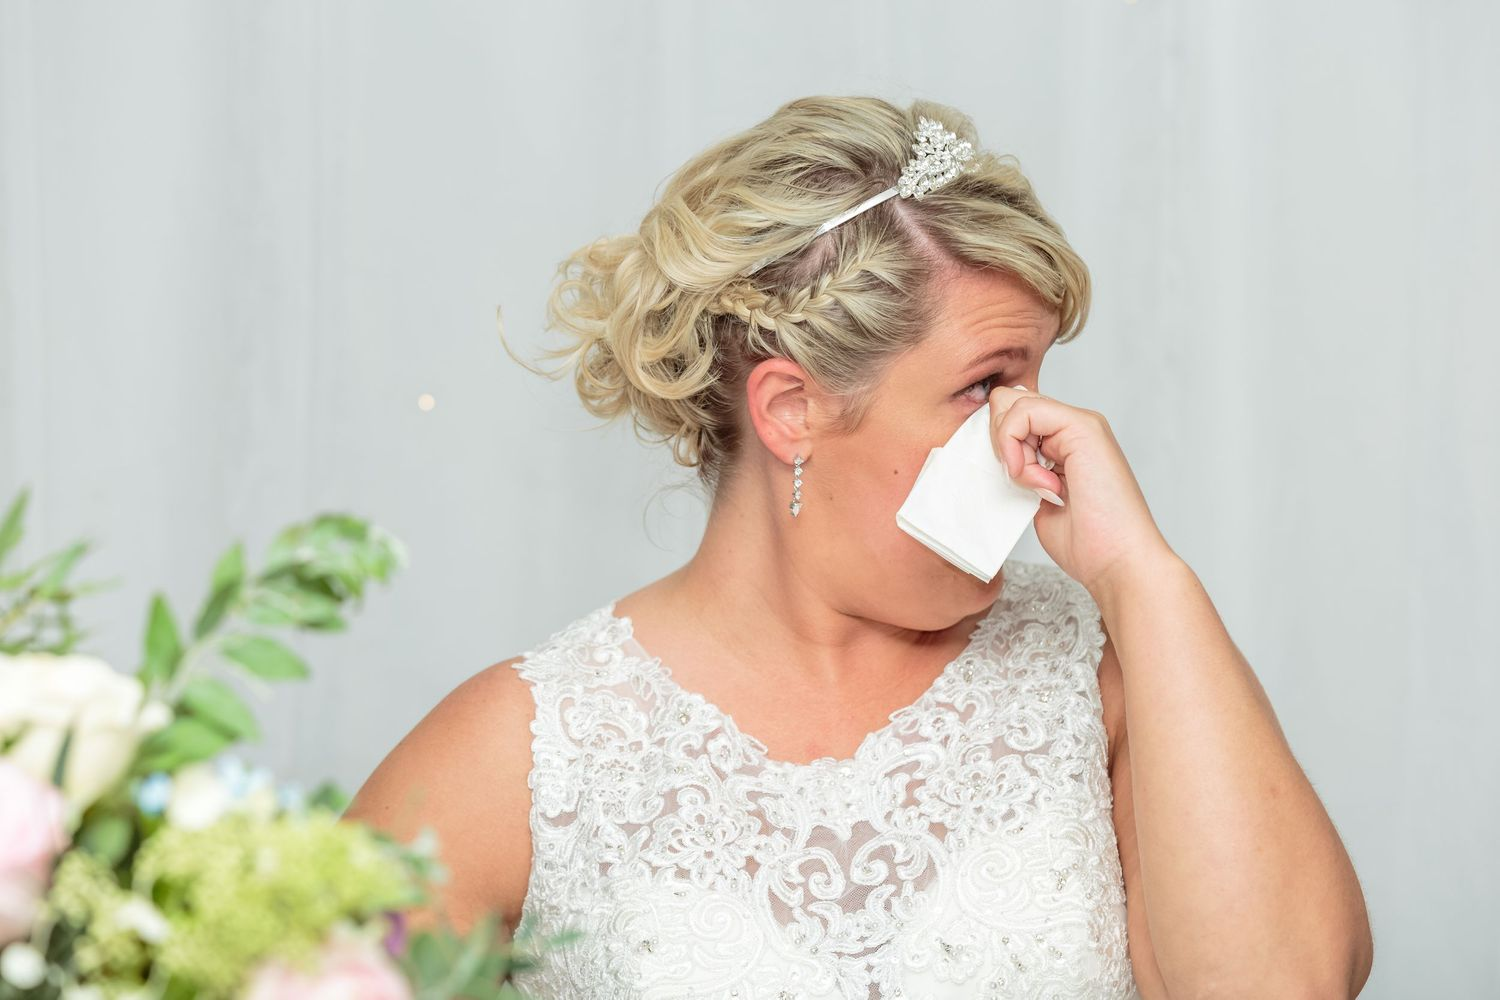 bride wipes a tear away from her eye with a napkin during her fathers speech